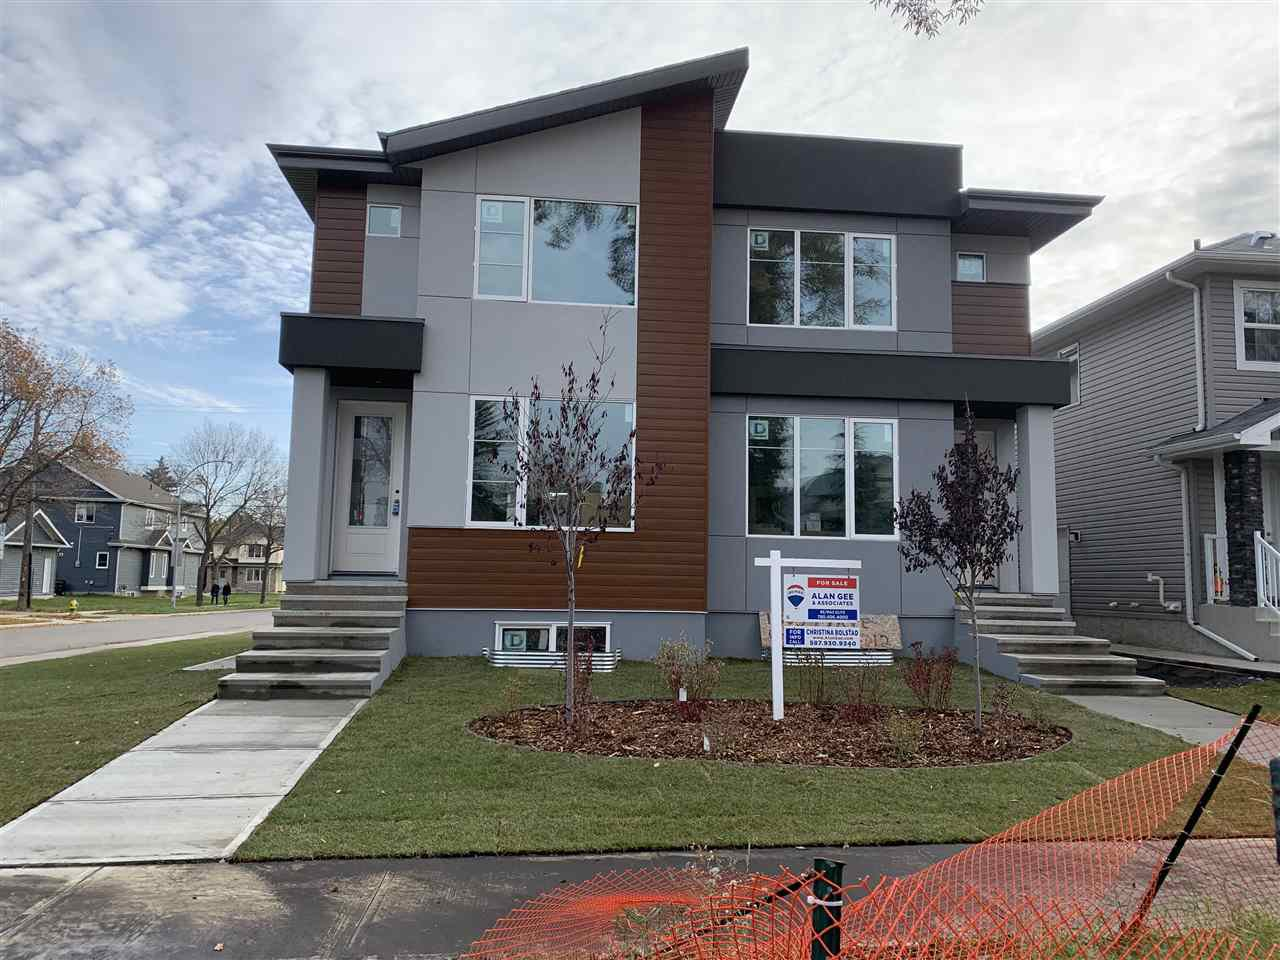 Main Photo: 11305 79 Avenue in Edmonton: Zone 15 House Half Duplex for sale : MLS®# E4174015